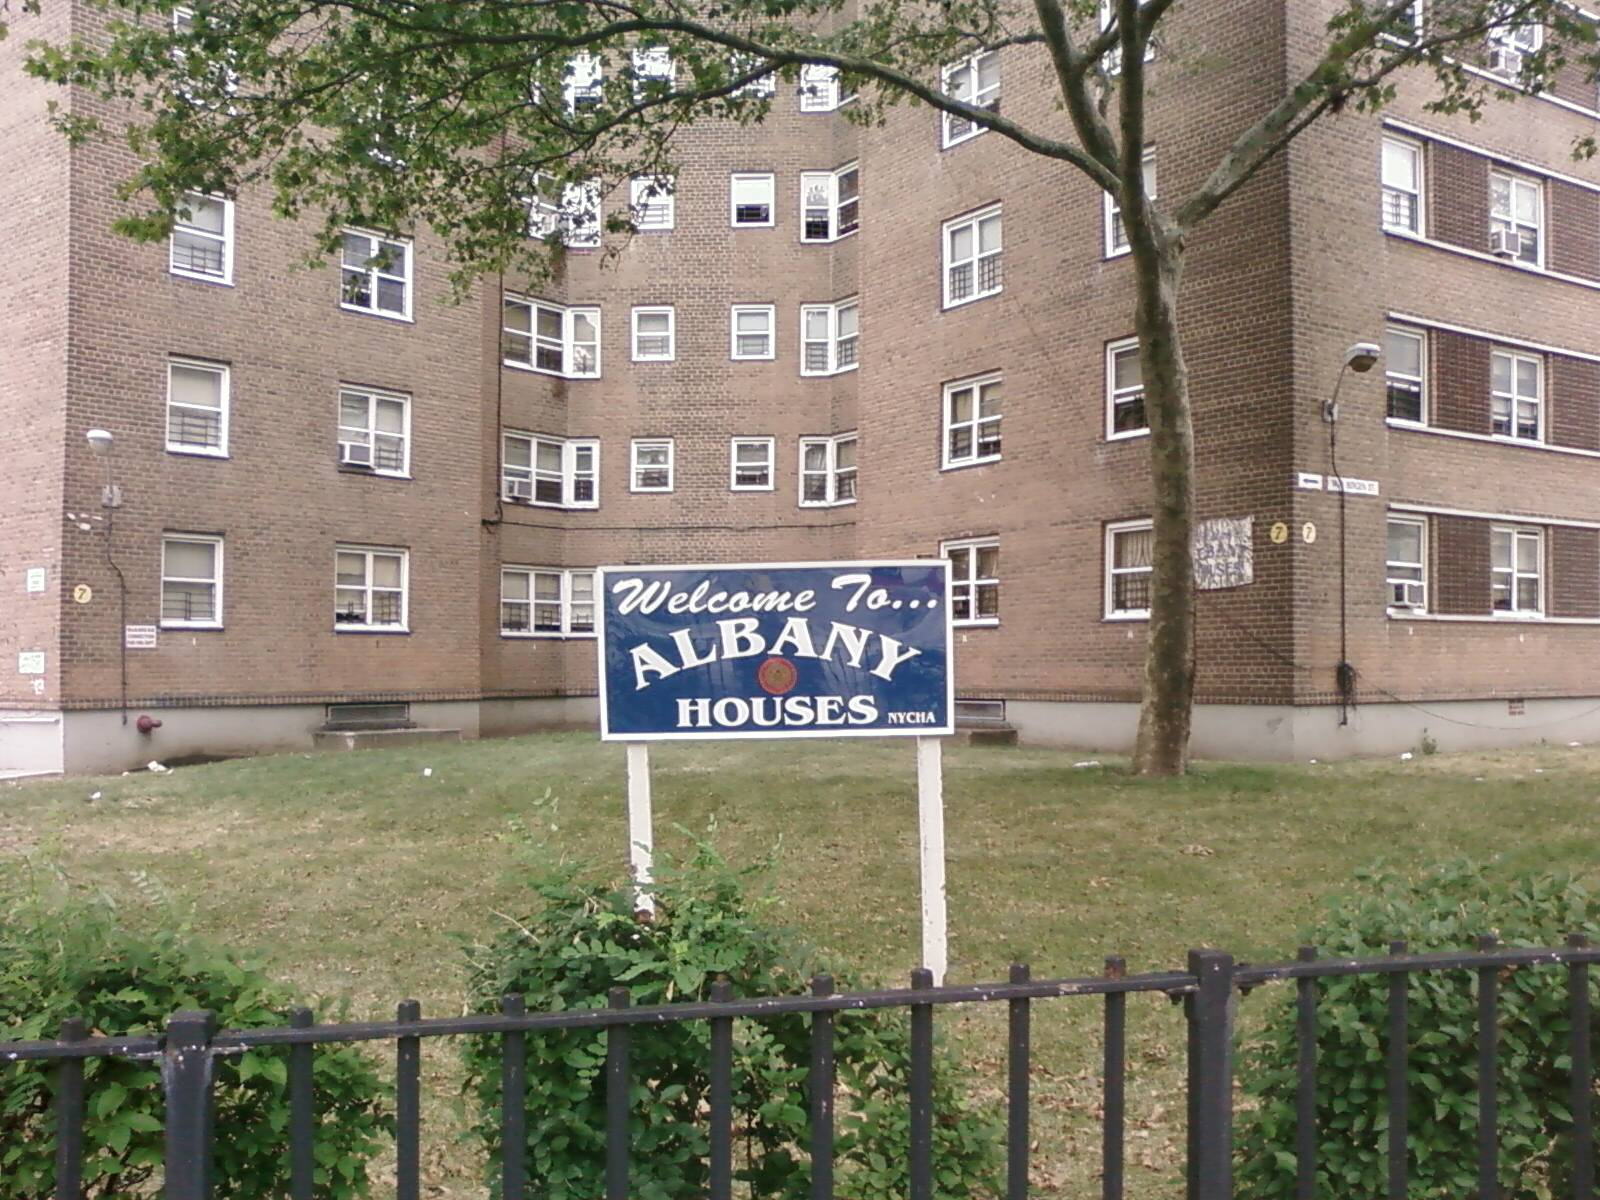 Albany houses projects